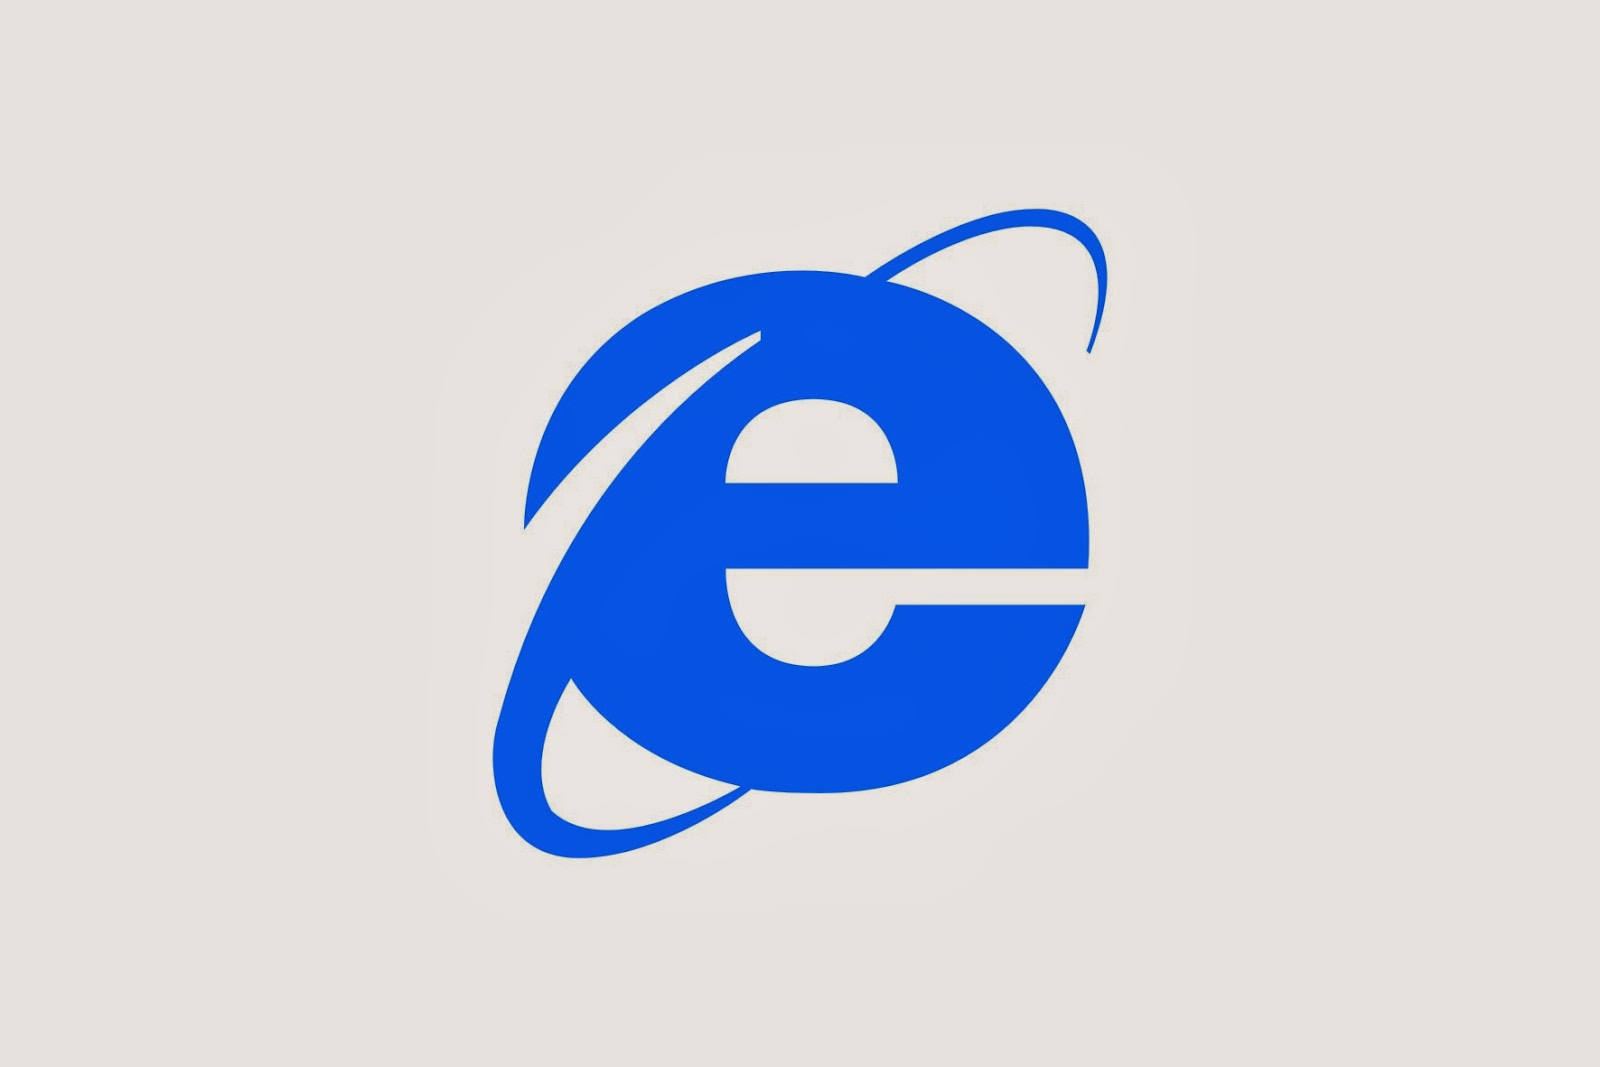 Internet Explorer Logo Vector | www.imgkid.com - The Image ...